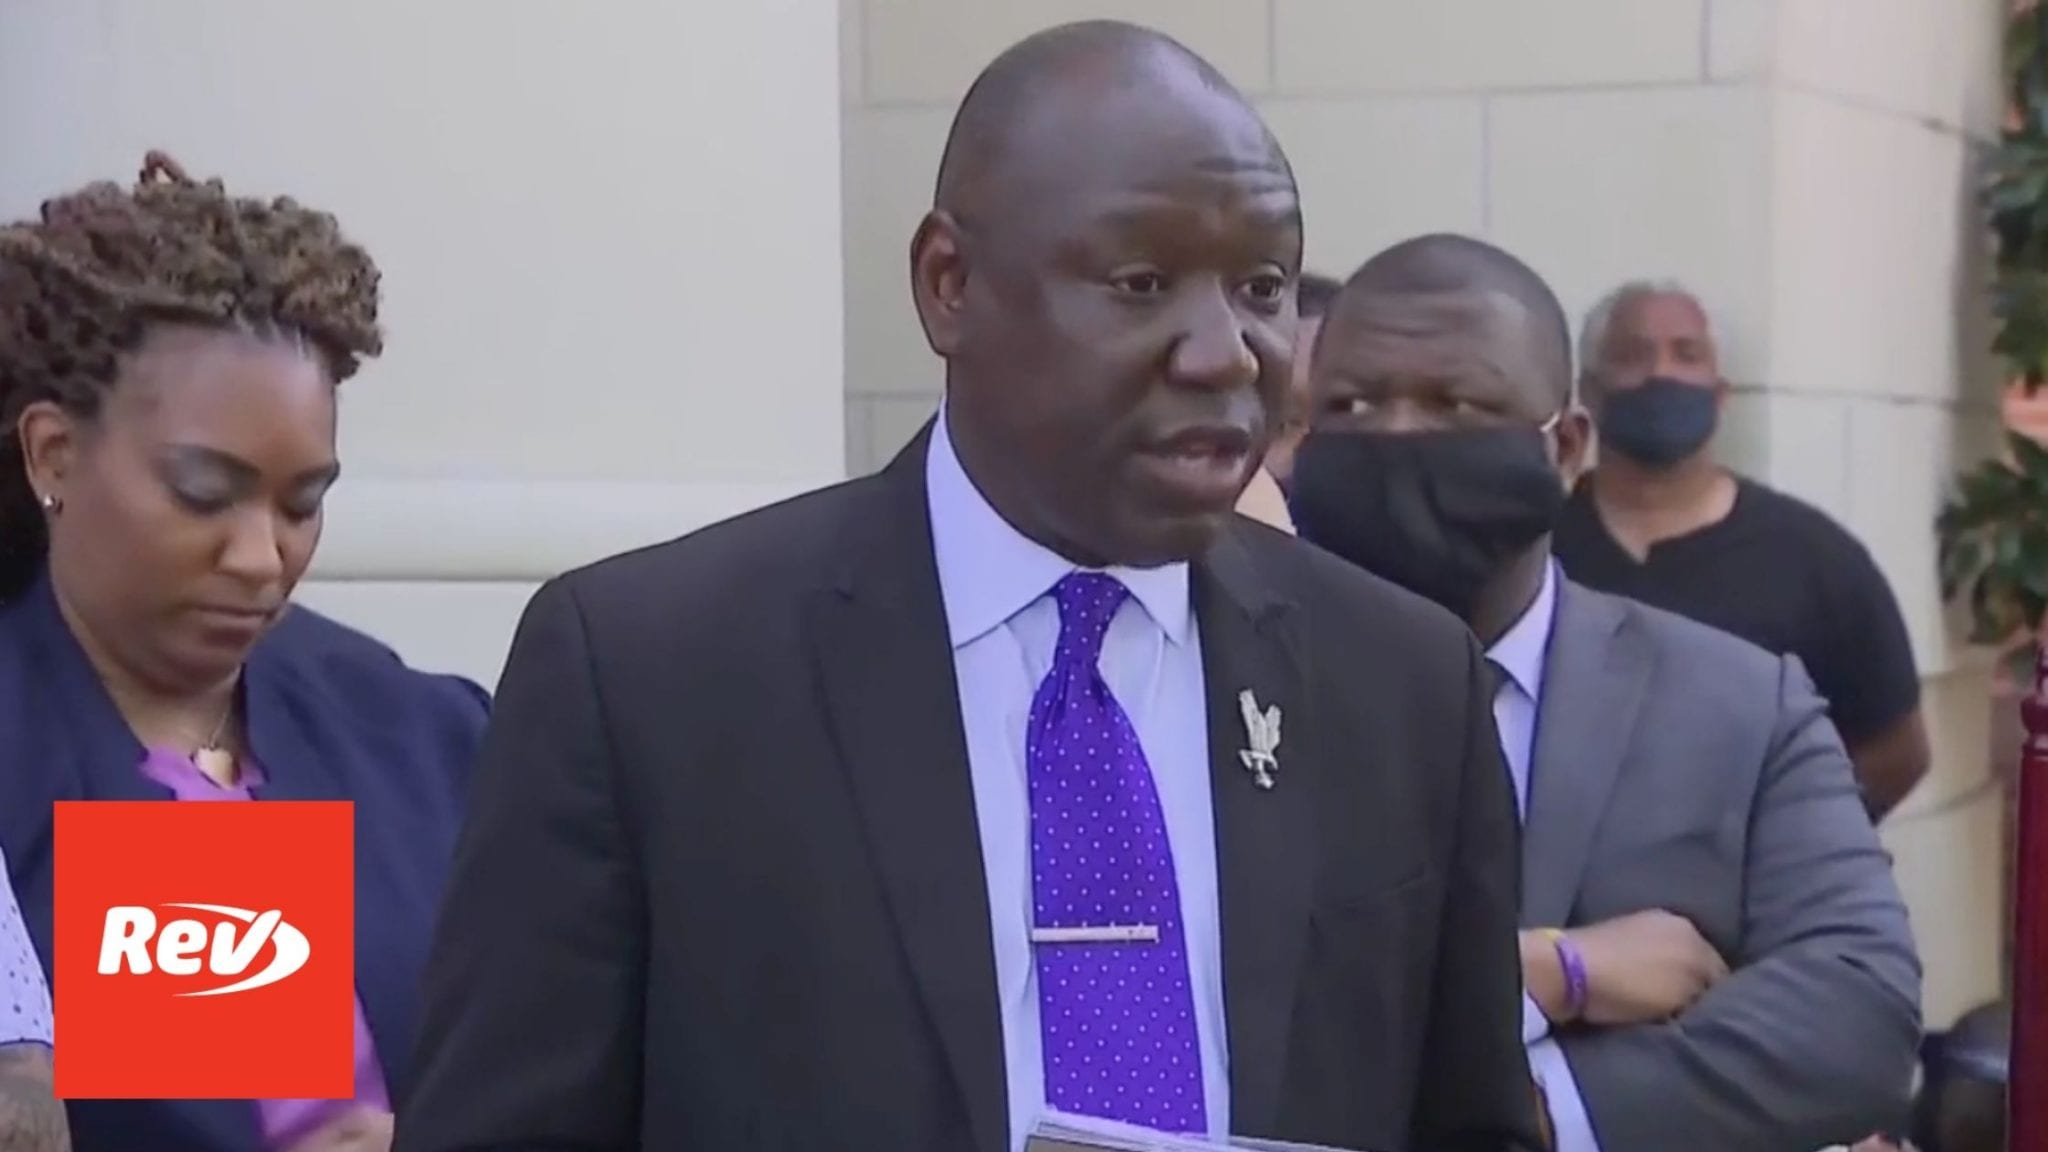 Ben Crump, Family of Andrew Brown Press Conference on Autopsy Report Transcript April 27